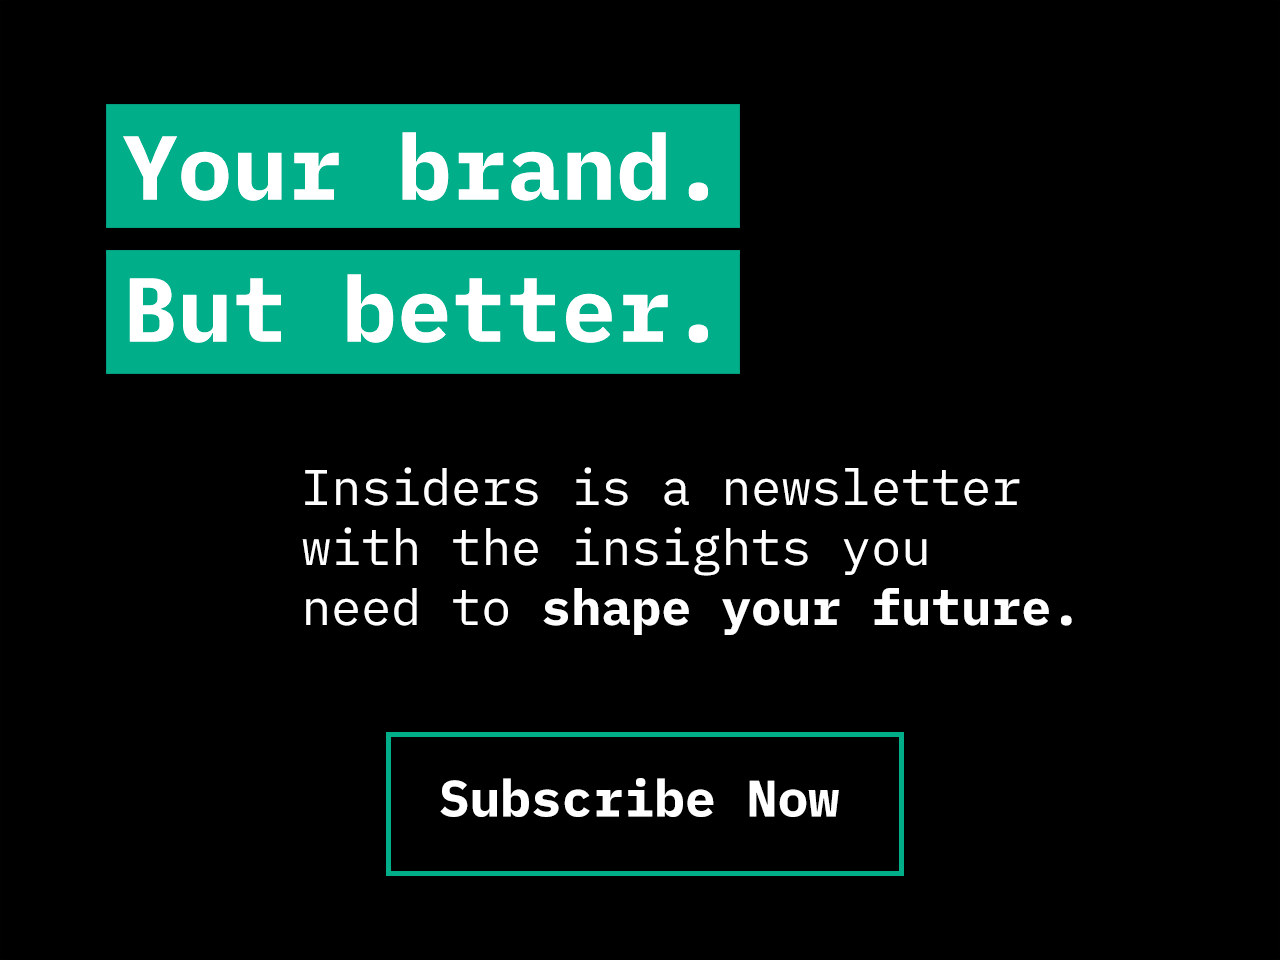 Your brand but better. Insiders is a newsletter with insights you need to help you shape your future. Subscribe now.